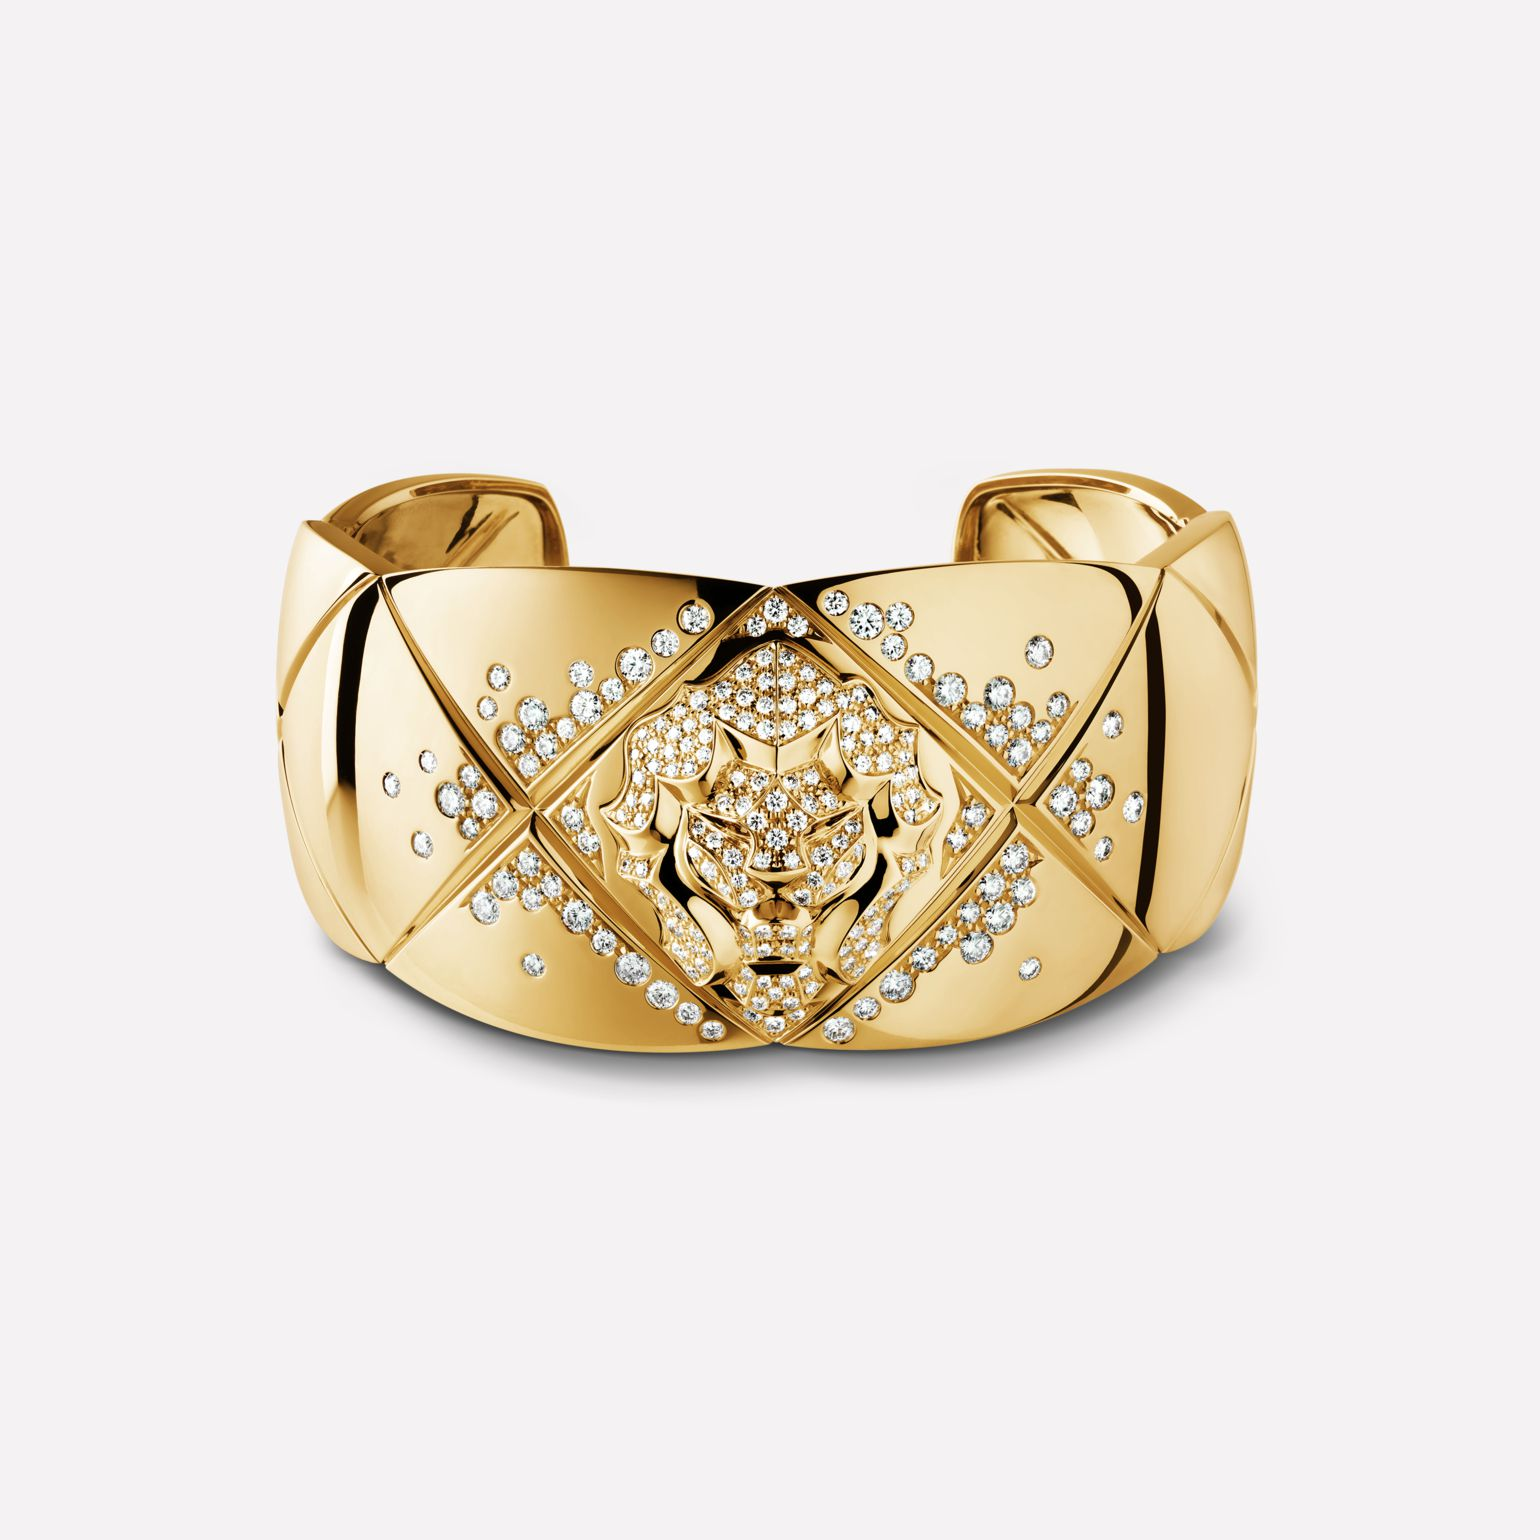 Coco Crush Bracelet Coco Crush quilted and lion cuff in 18K yellow gold and diamonds